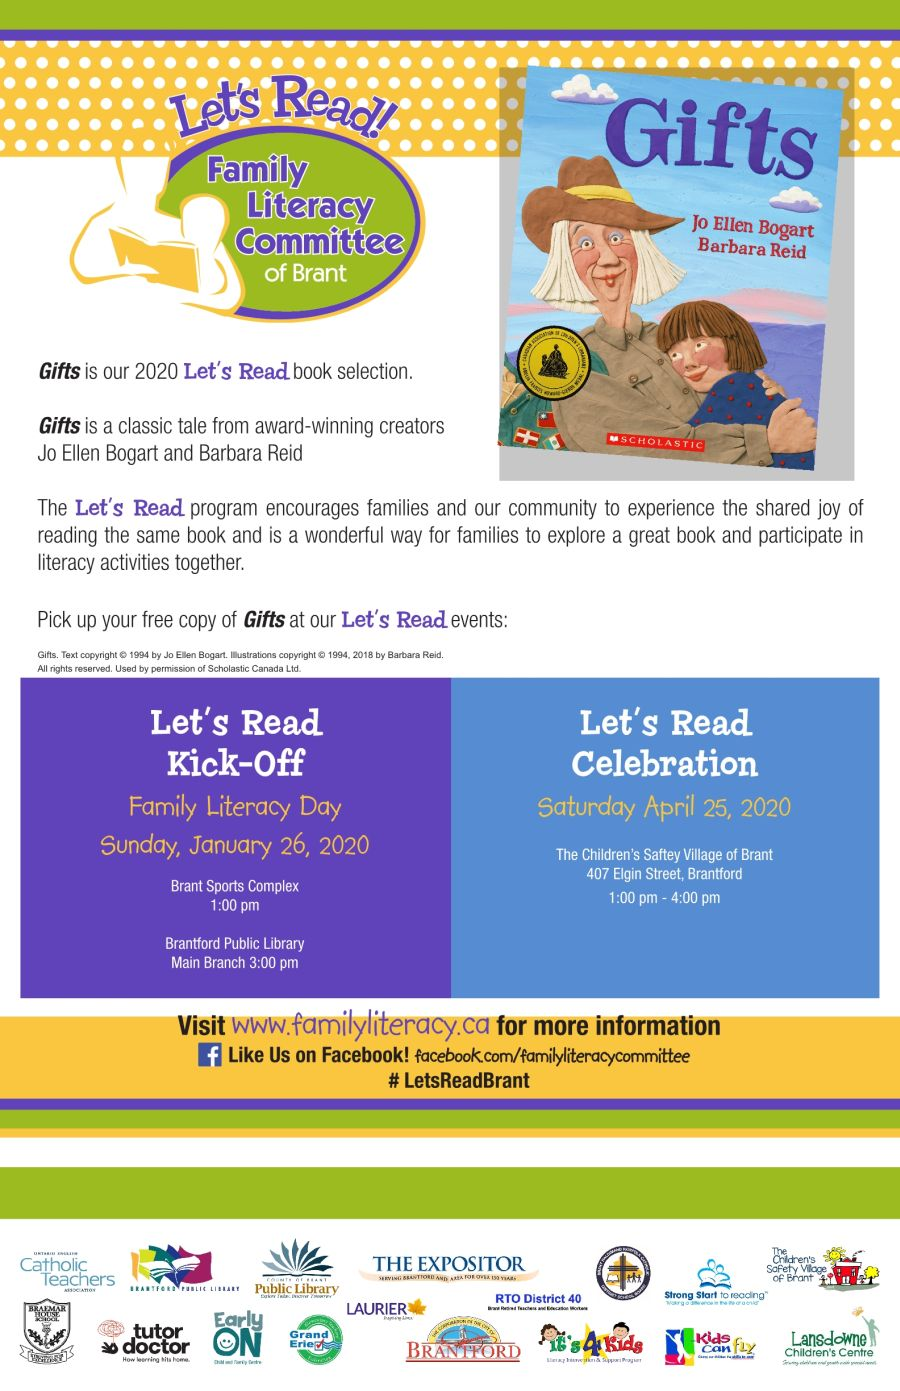 Let's Read poster